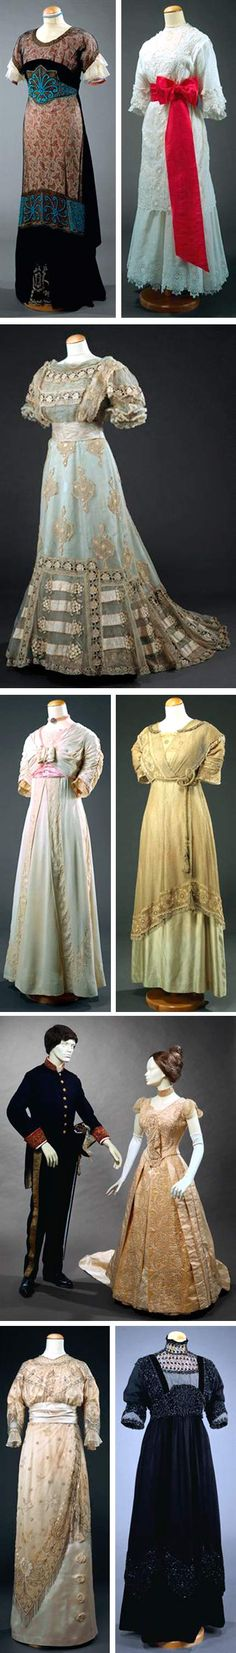 Dresses from the National Museum of Costume and Fashion, Portugal. All date from ca. 1900-1920. matriz.net